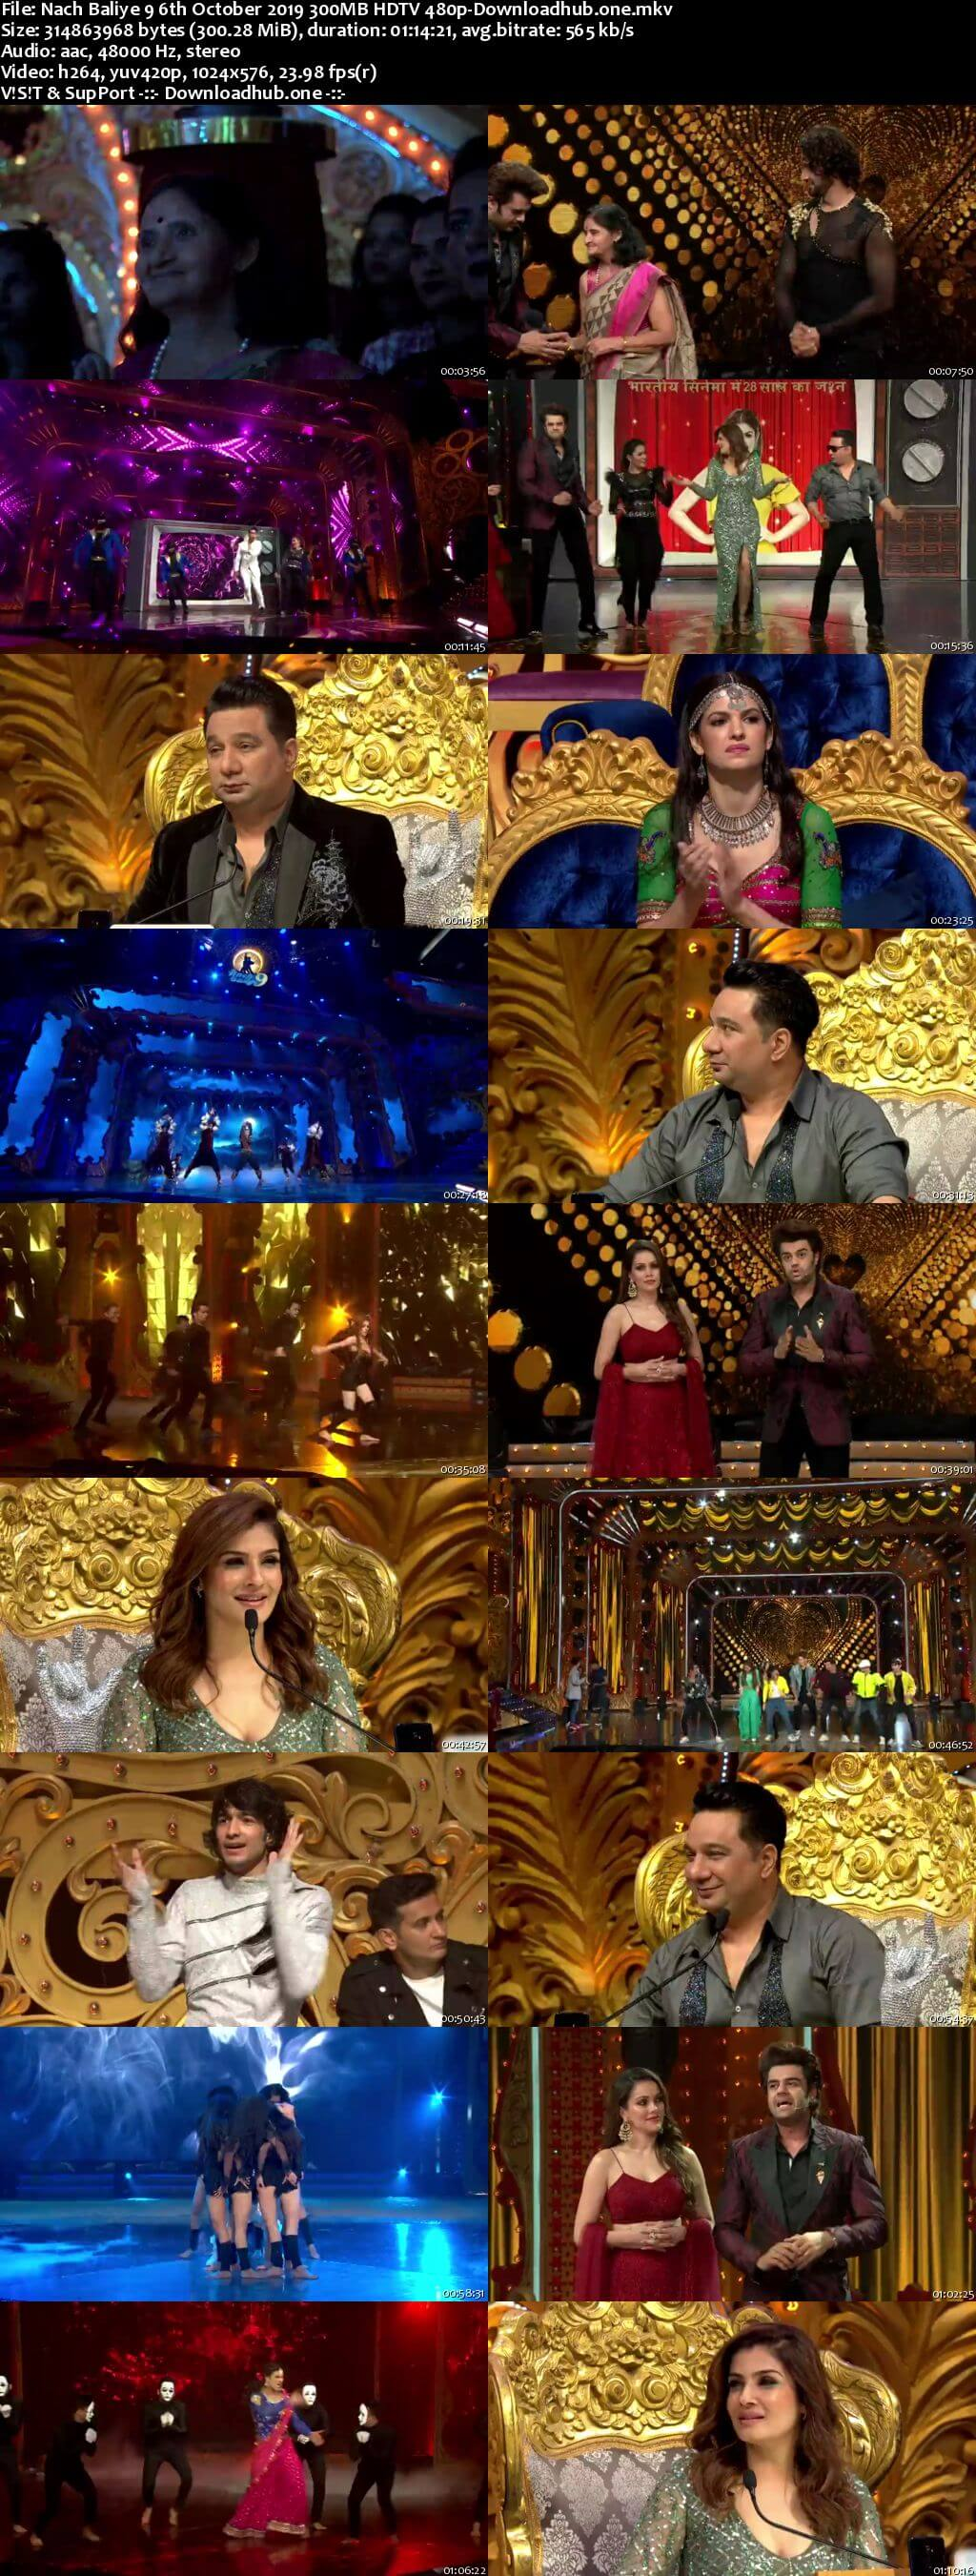 Nach Baliye 9 06 October 2019 Episode 25 HDTV 480p